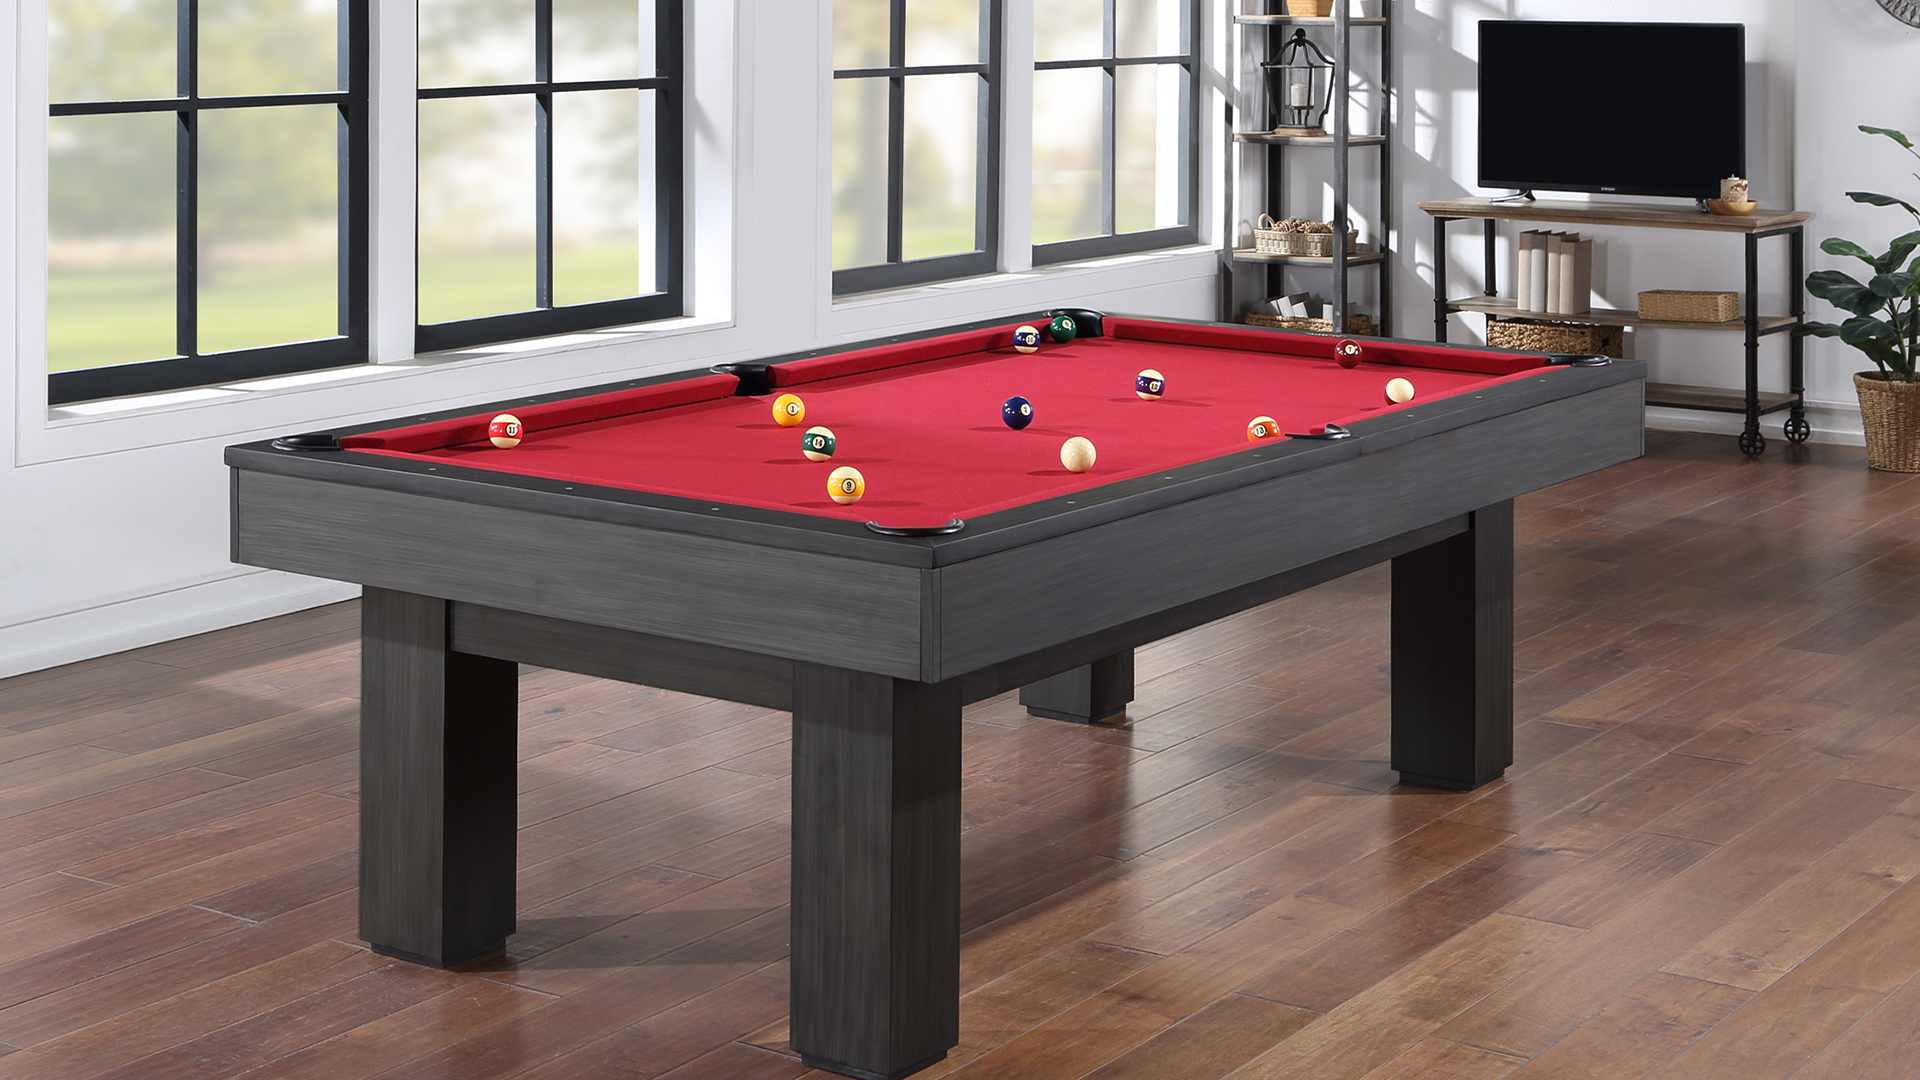 History of Billiards and Pool